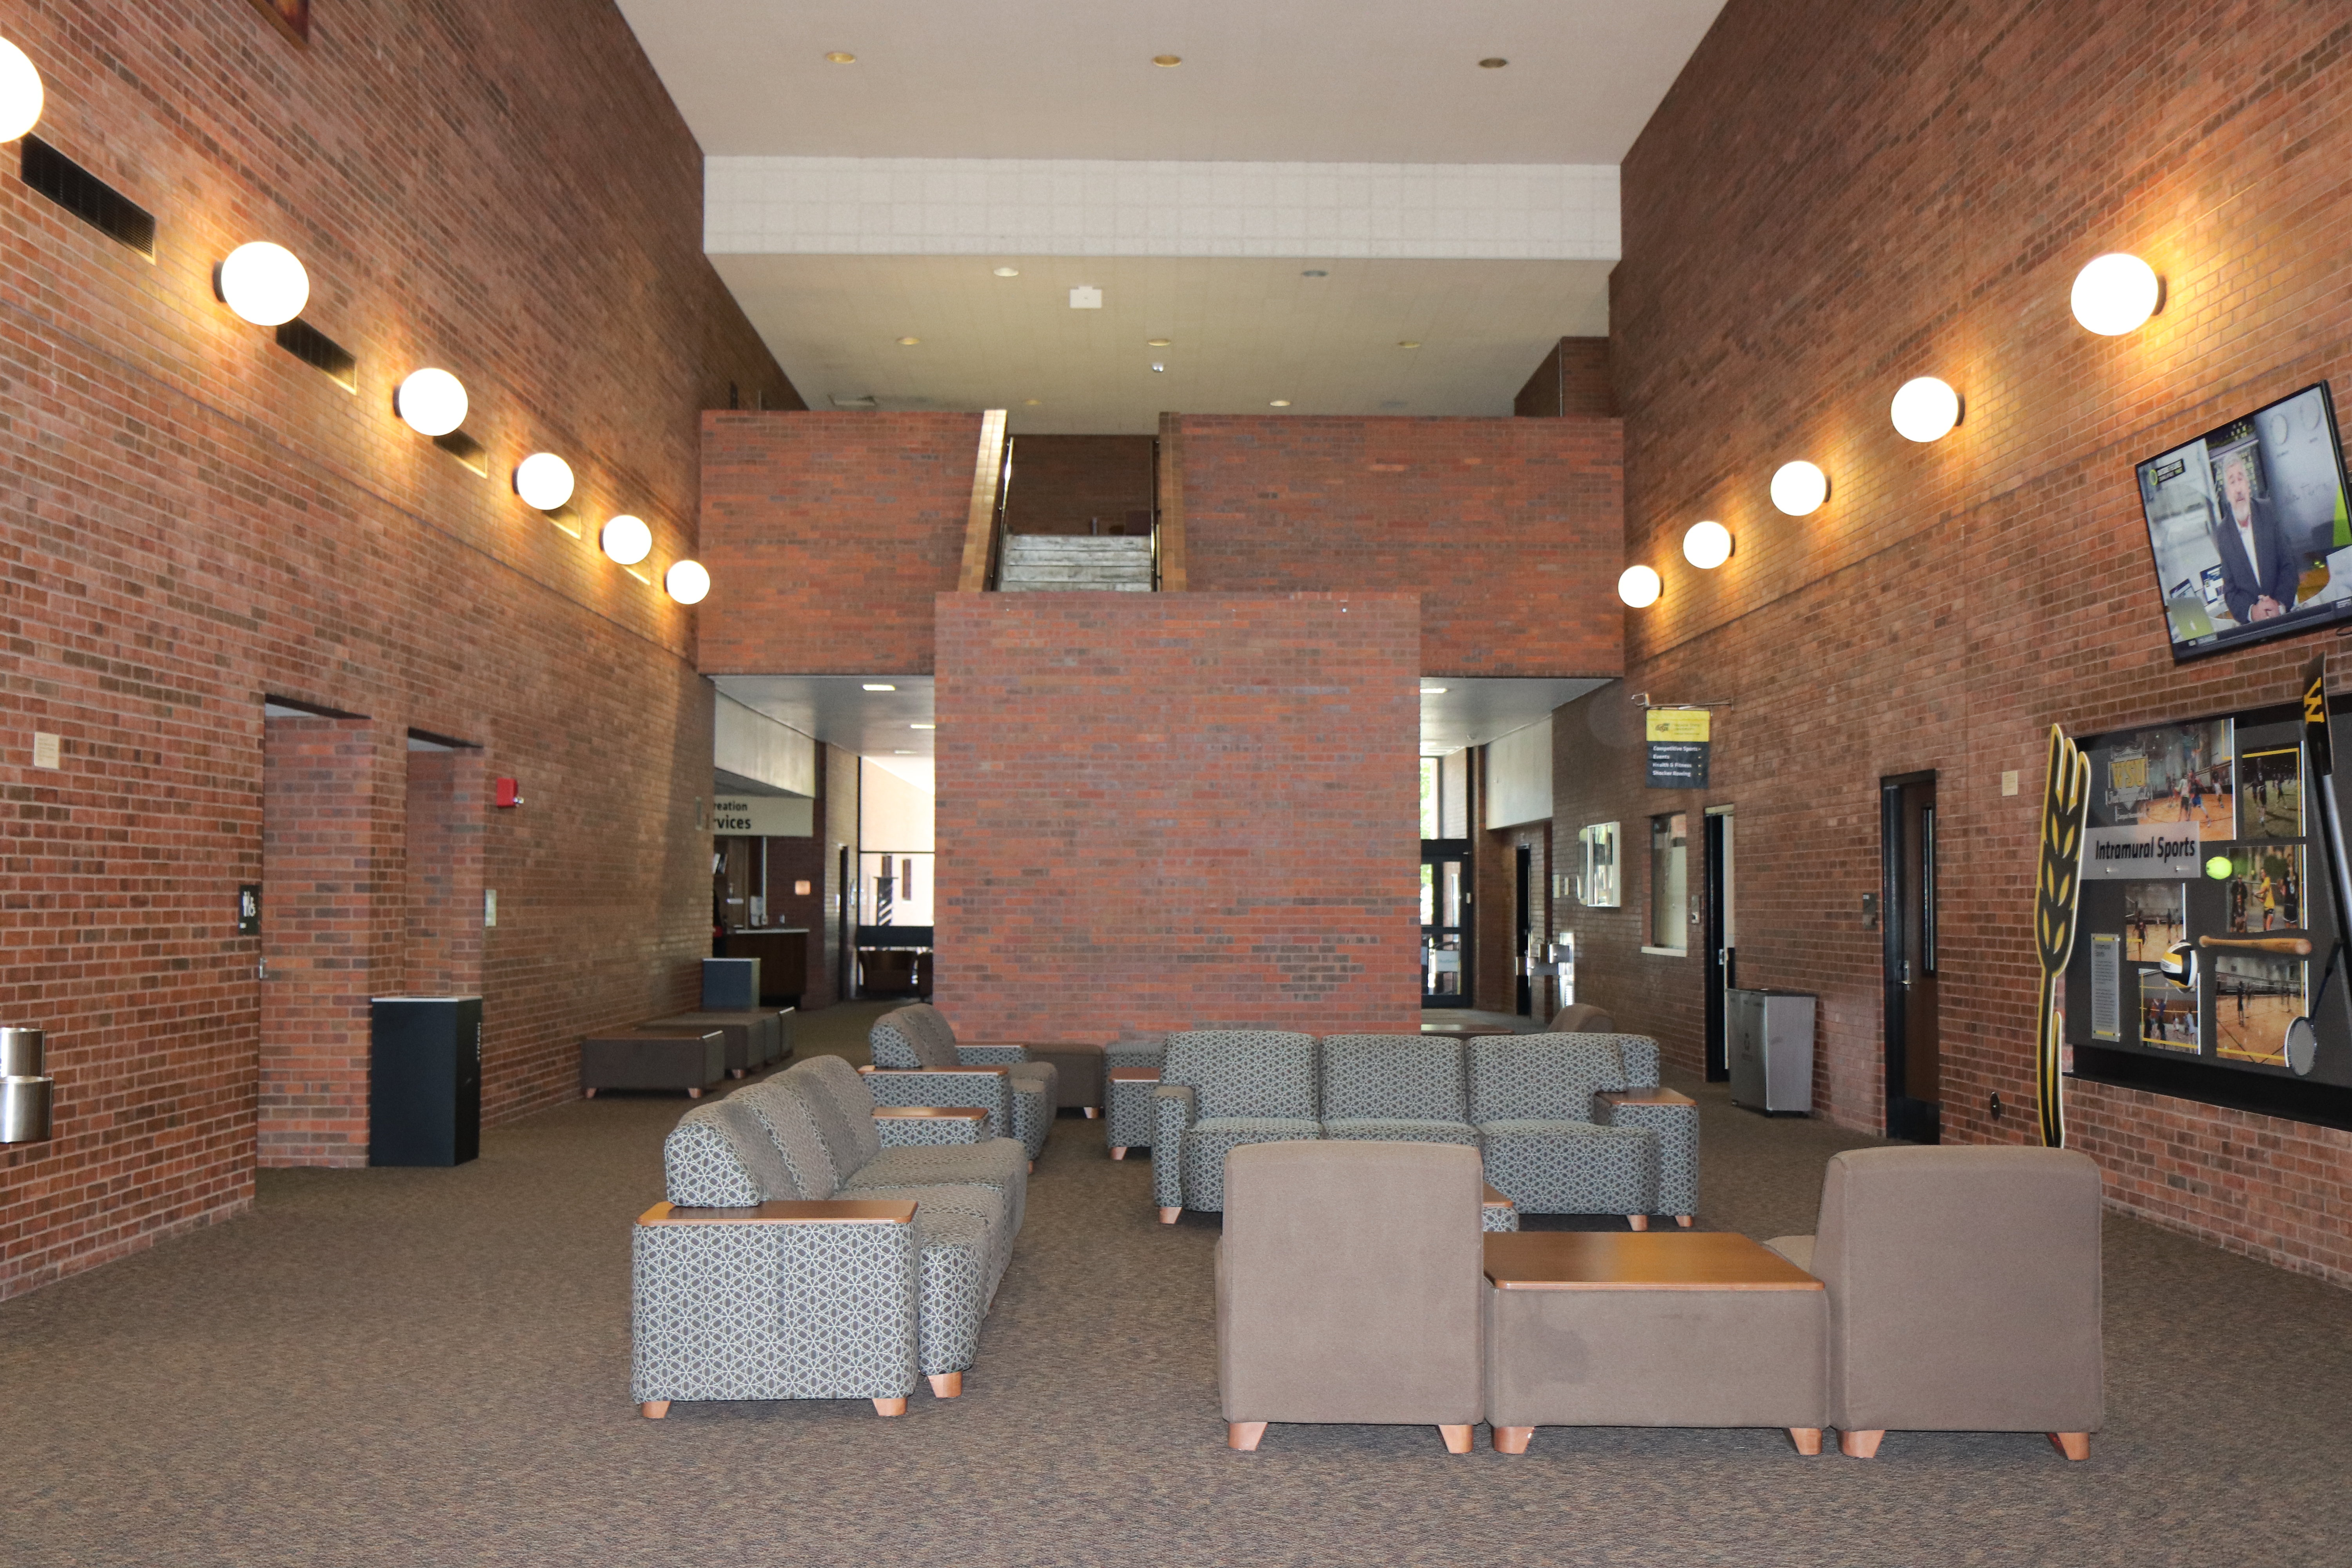 view from the heskett center lobby. seating area with chairs and couches lined by spherical lights on the walls.